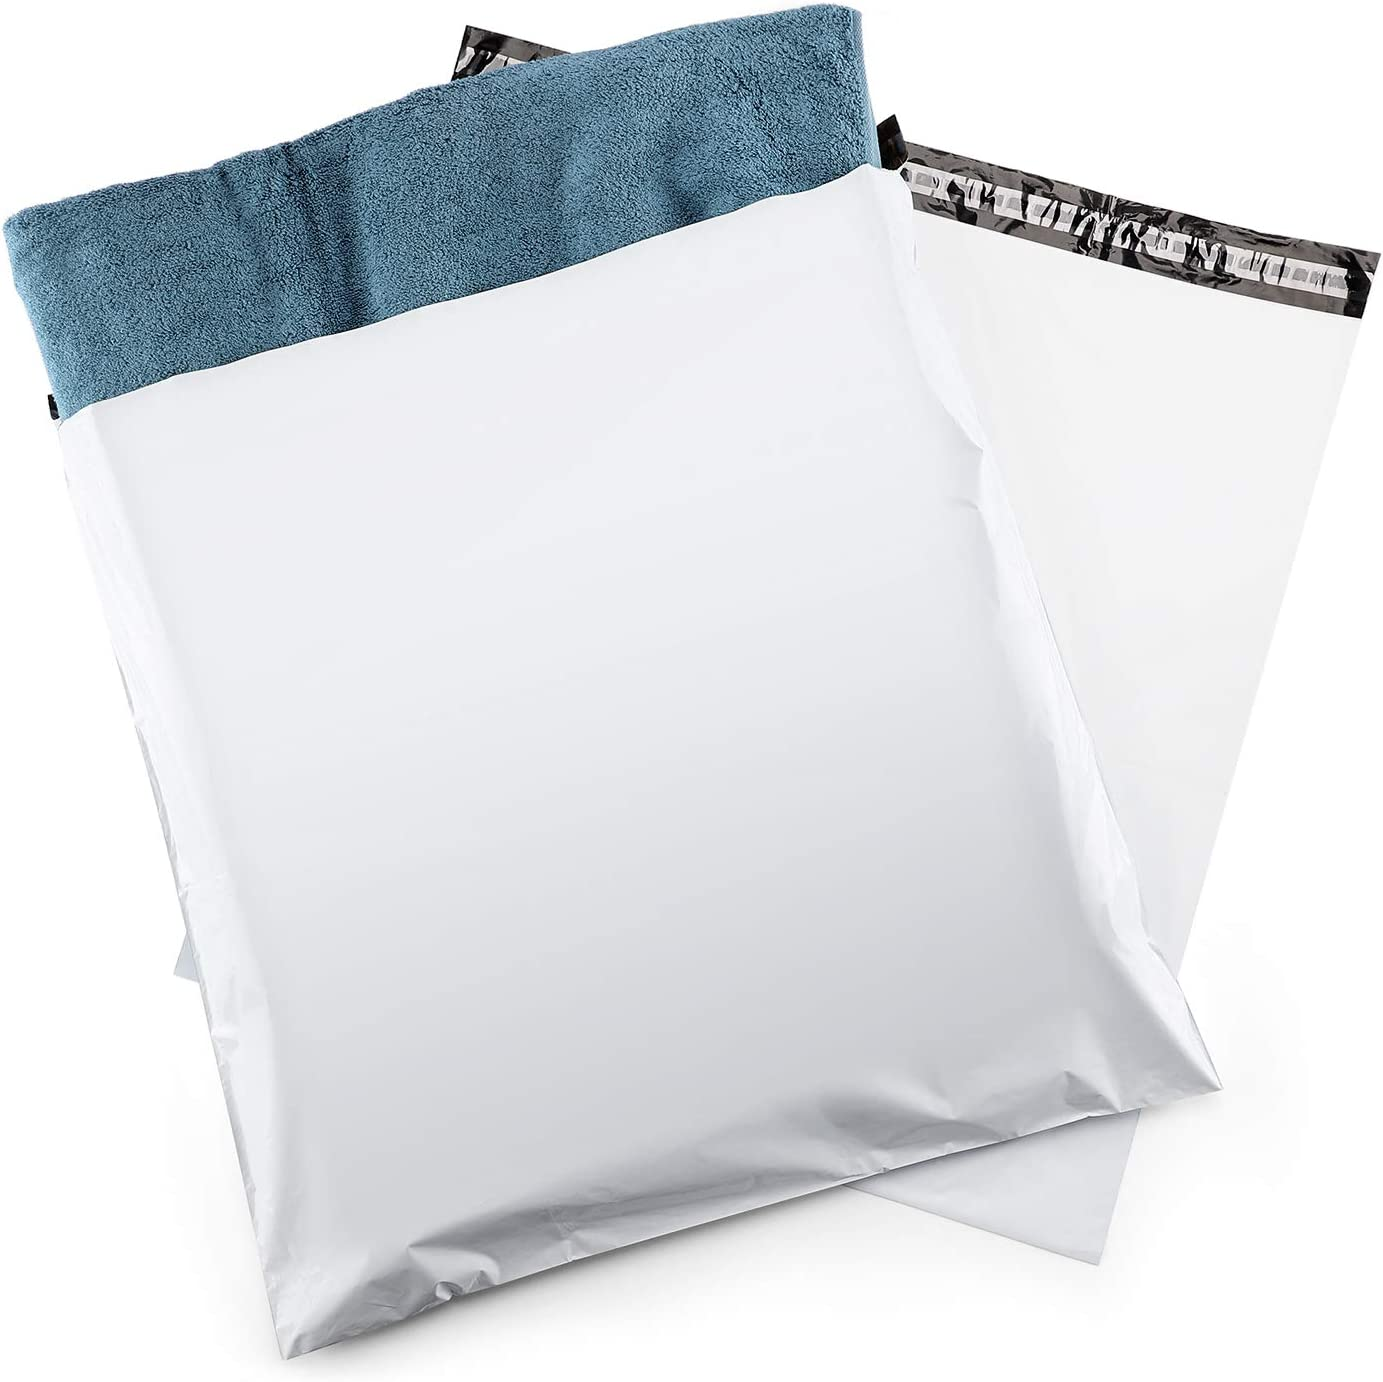 100PCS White Plastic Mailing Bags Poly Mailer Shipping Envelopes Self Sealing